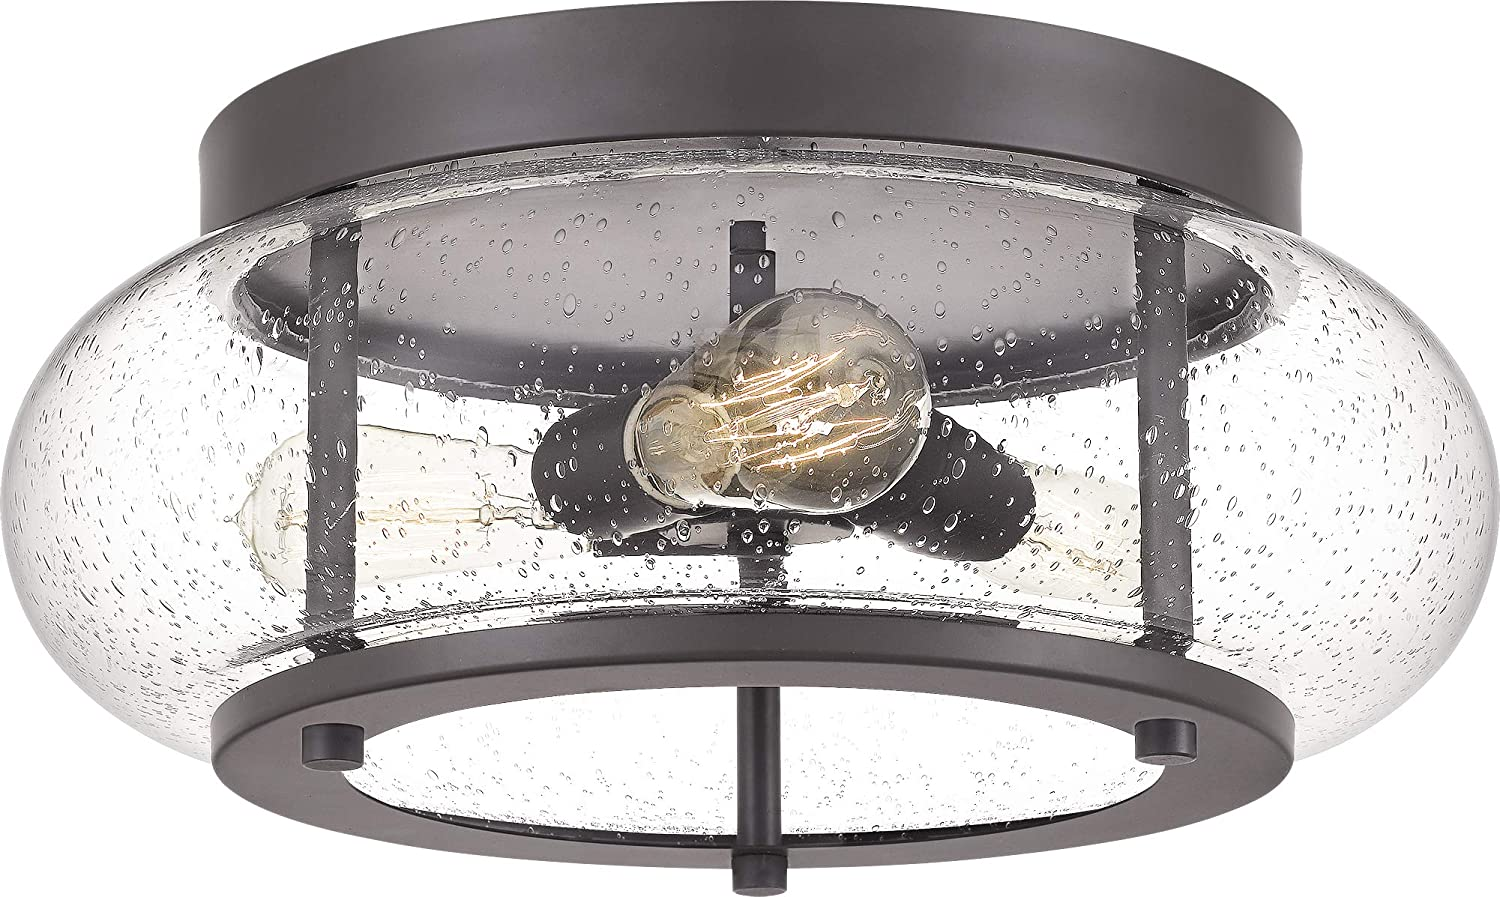 Quoizel Trg1616oz Trilogy Glass Lantern Flush Mount Ceiling Lighting 3 Light 225 Watts Old Bronze 7 H X 16 W Home Improvement